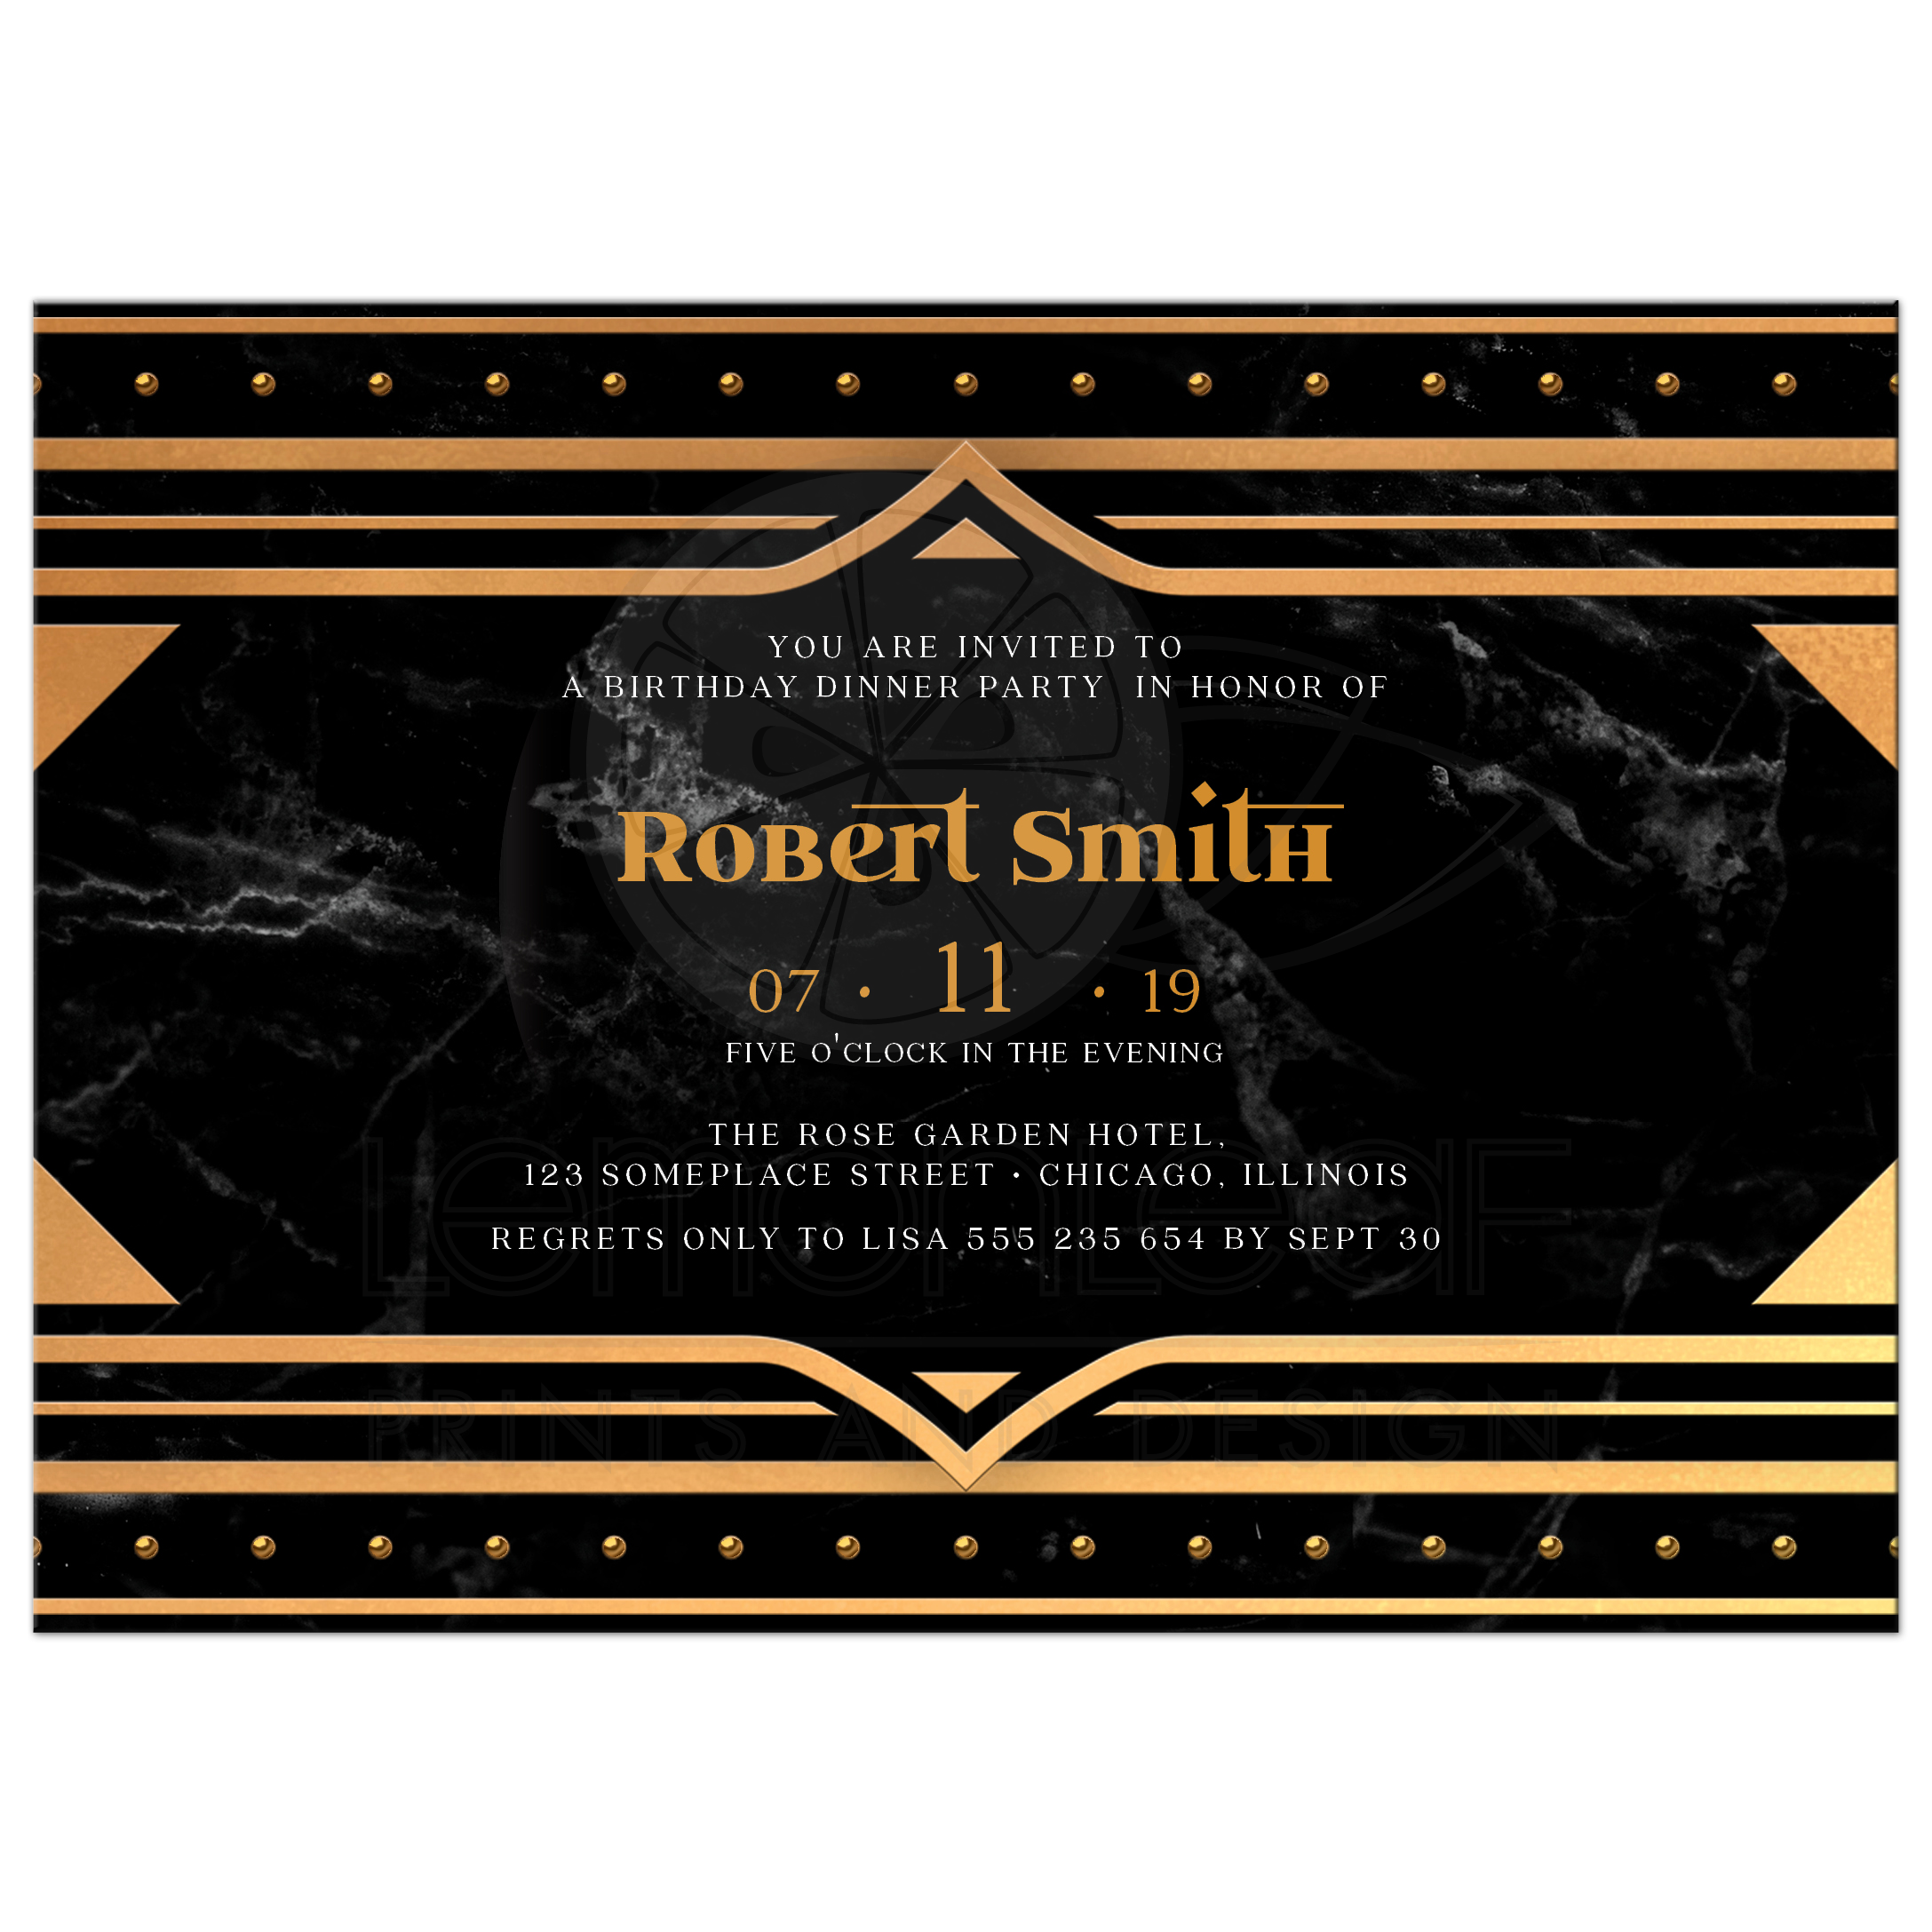 Black and gold 75th birthday invitations art deco dinner party 75th birthday art deco dinner party invitation stopboris Choice Image